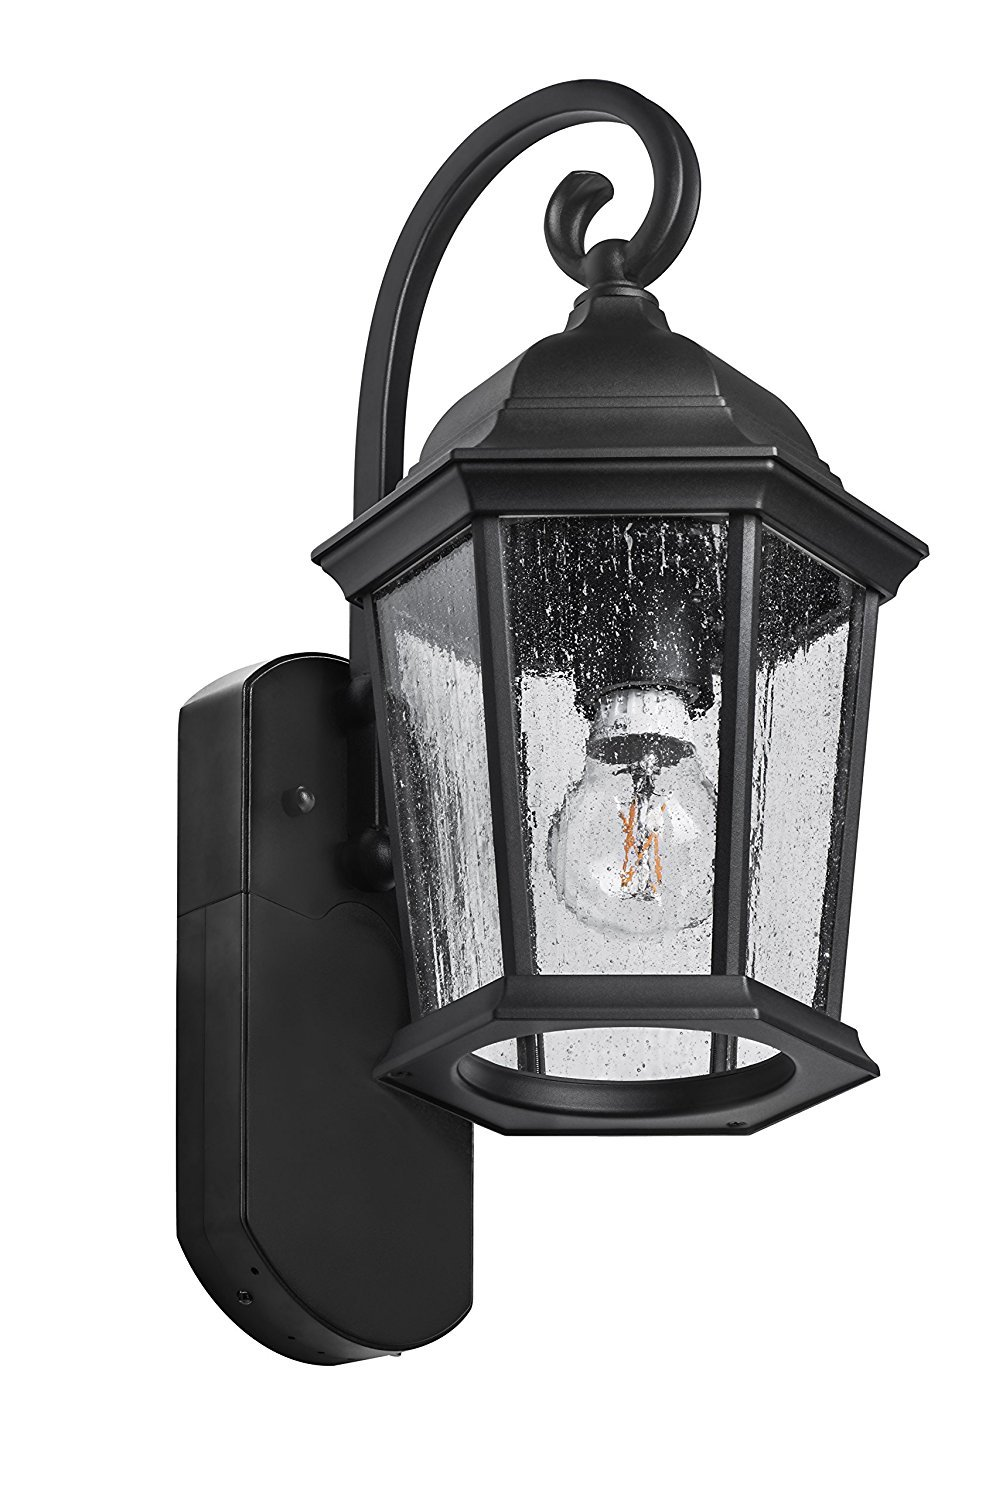 Maximus Smart Companion Light (Camera-Less) - Coach Black - Works with Amazon Alexa